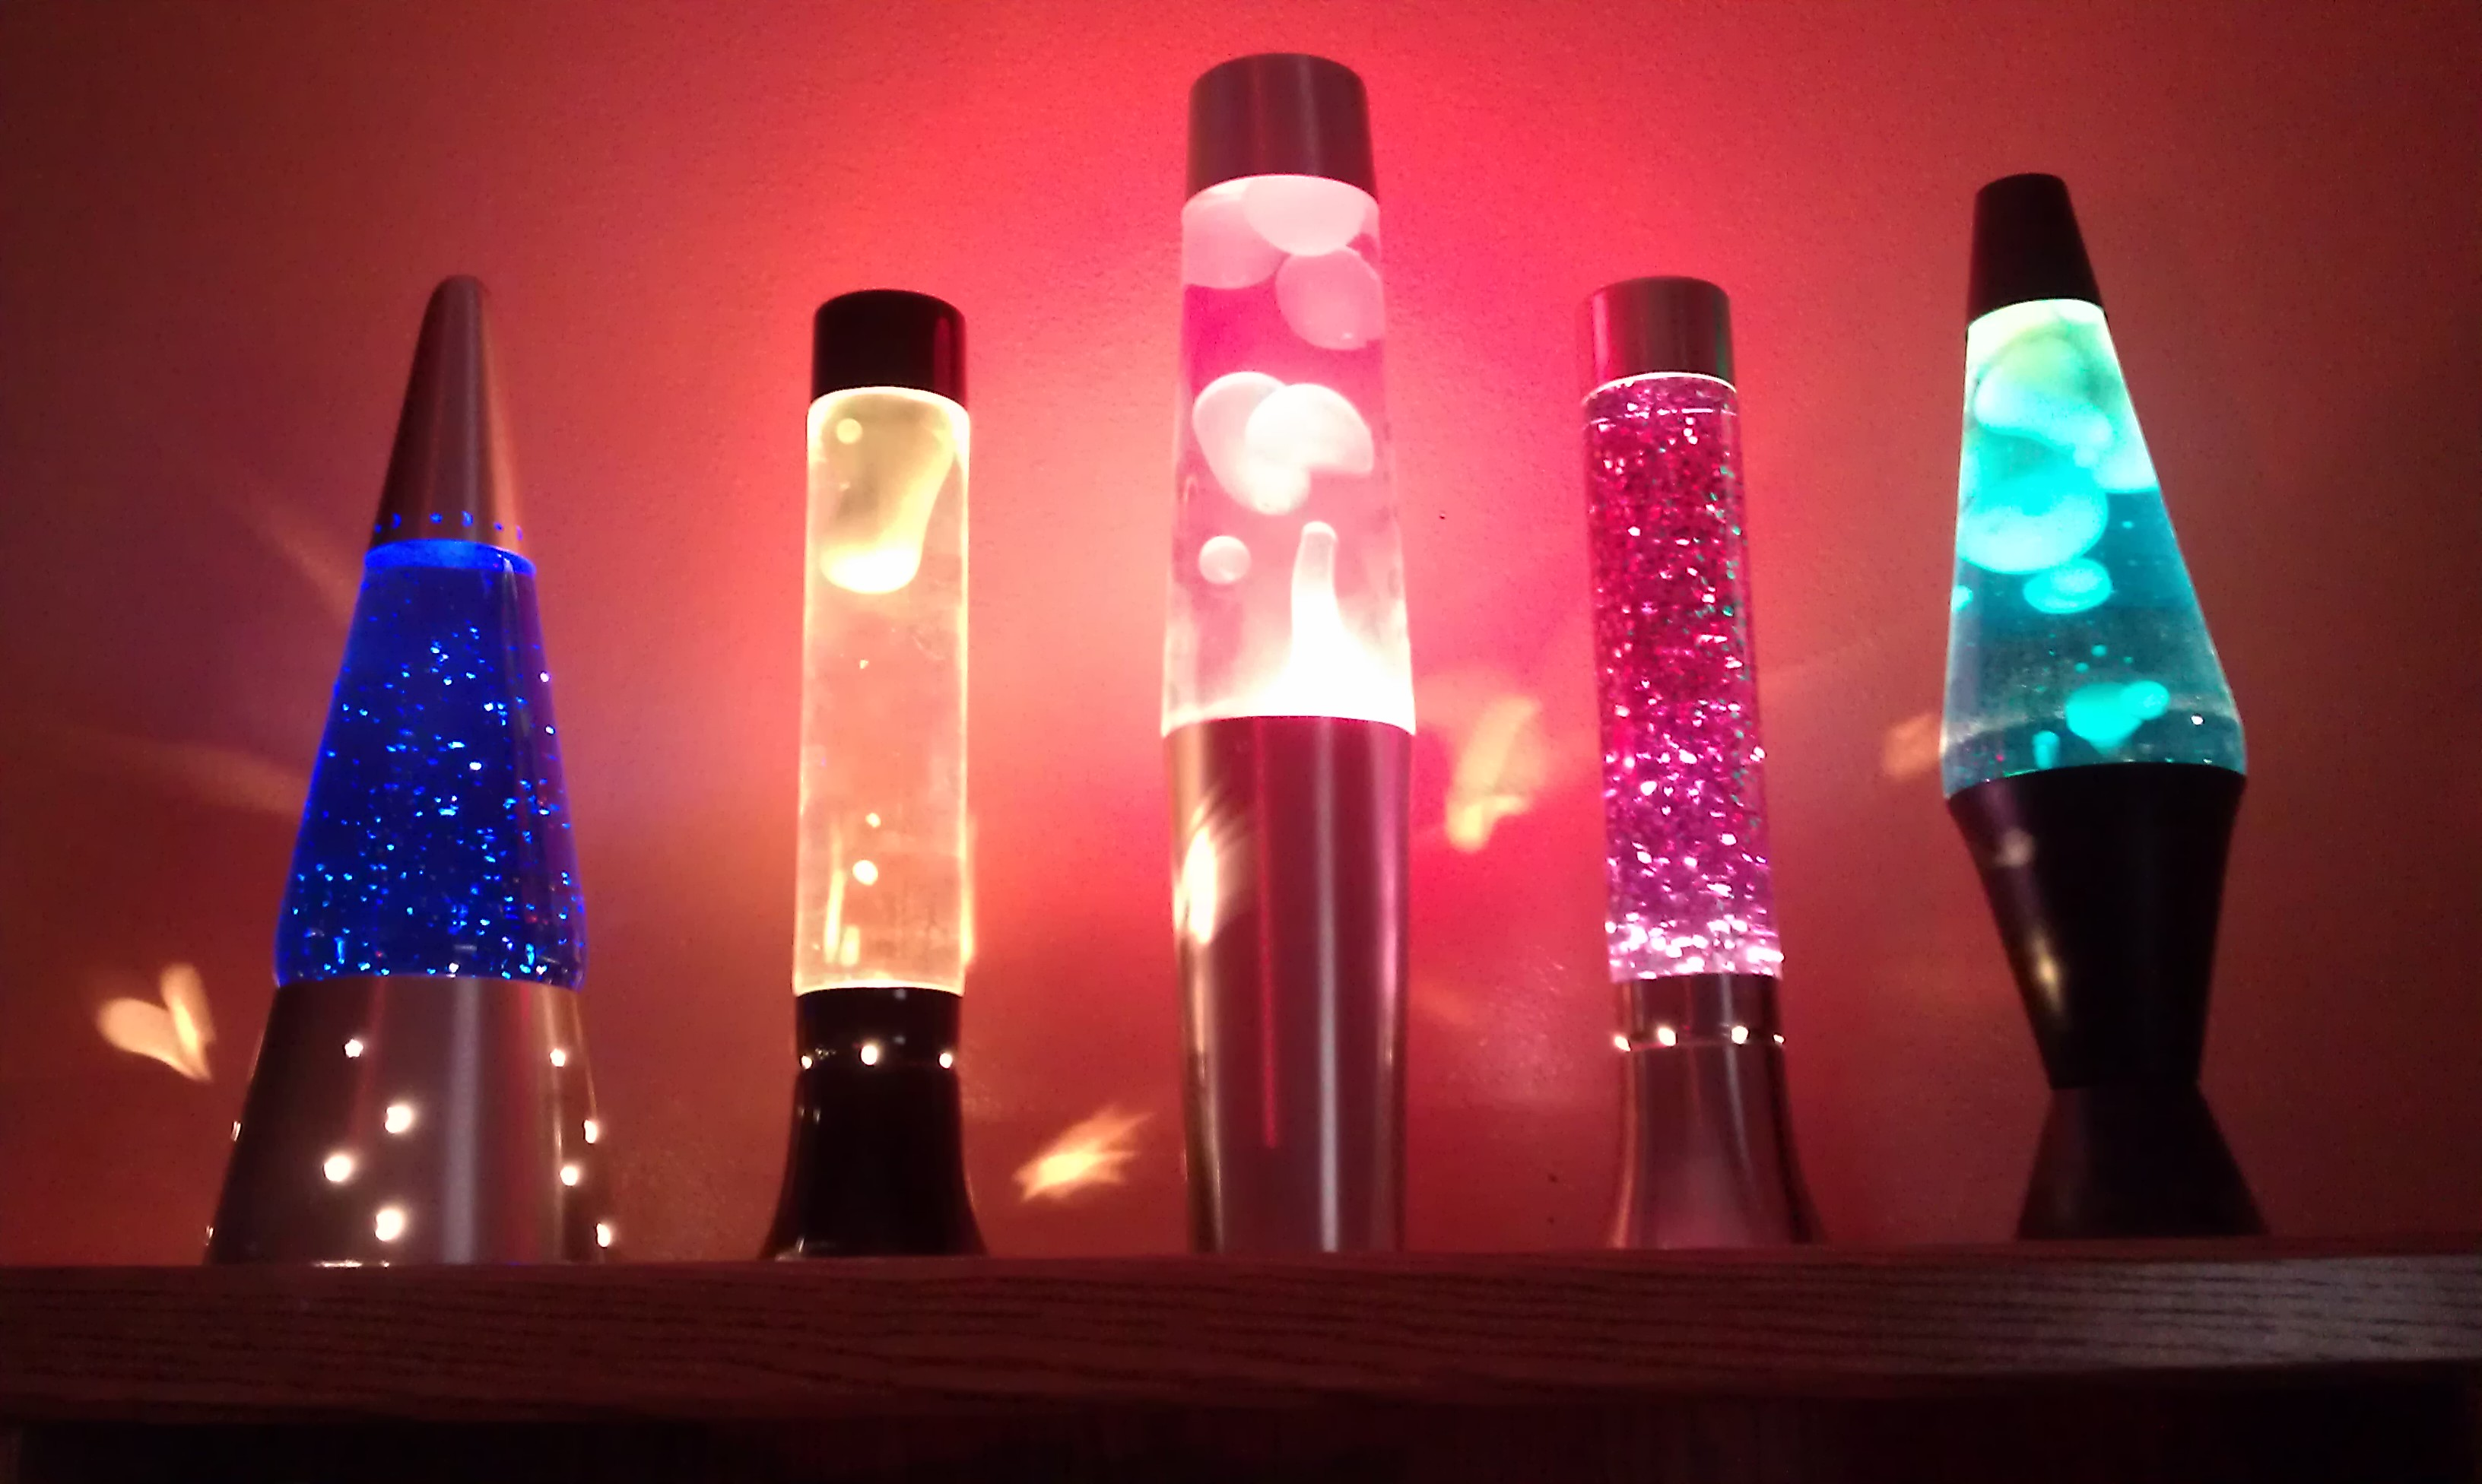 coolest lava lamps 10 reasons to buy warisan lighting. Black Bedroom Furniture Sets. Home Design Ideas